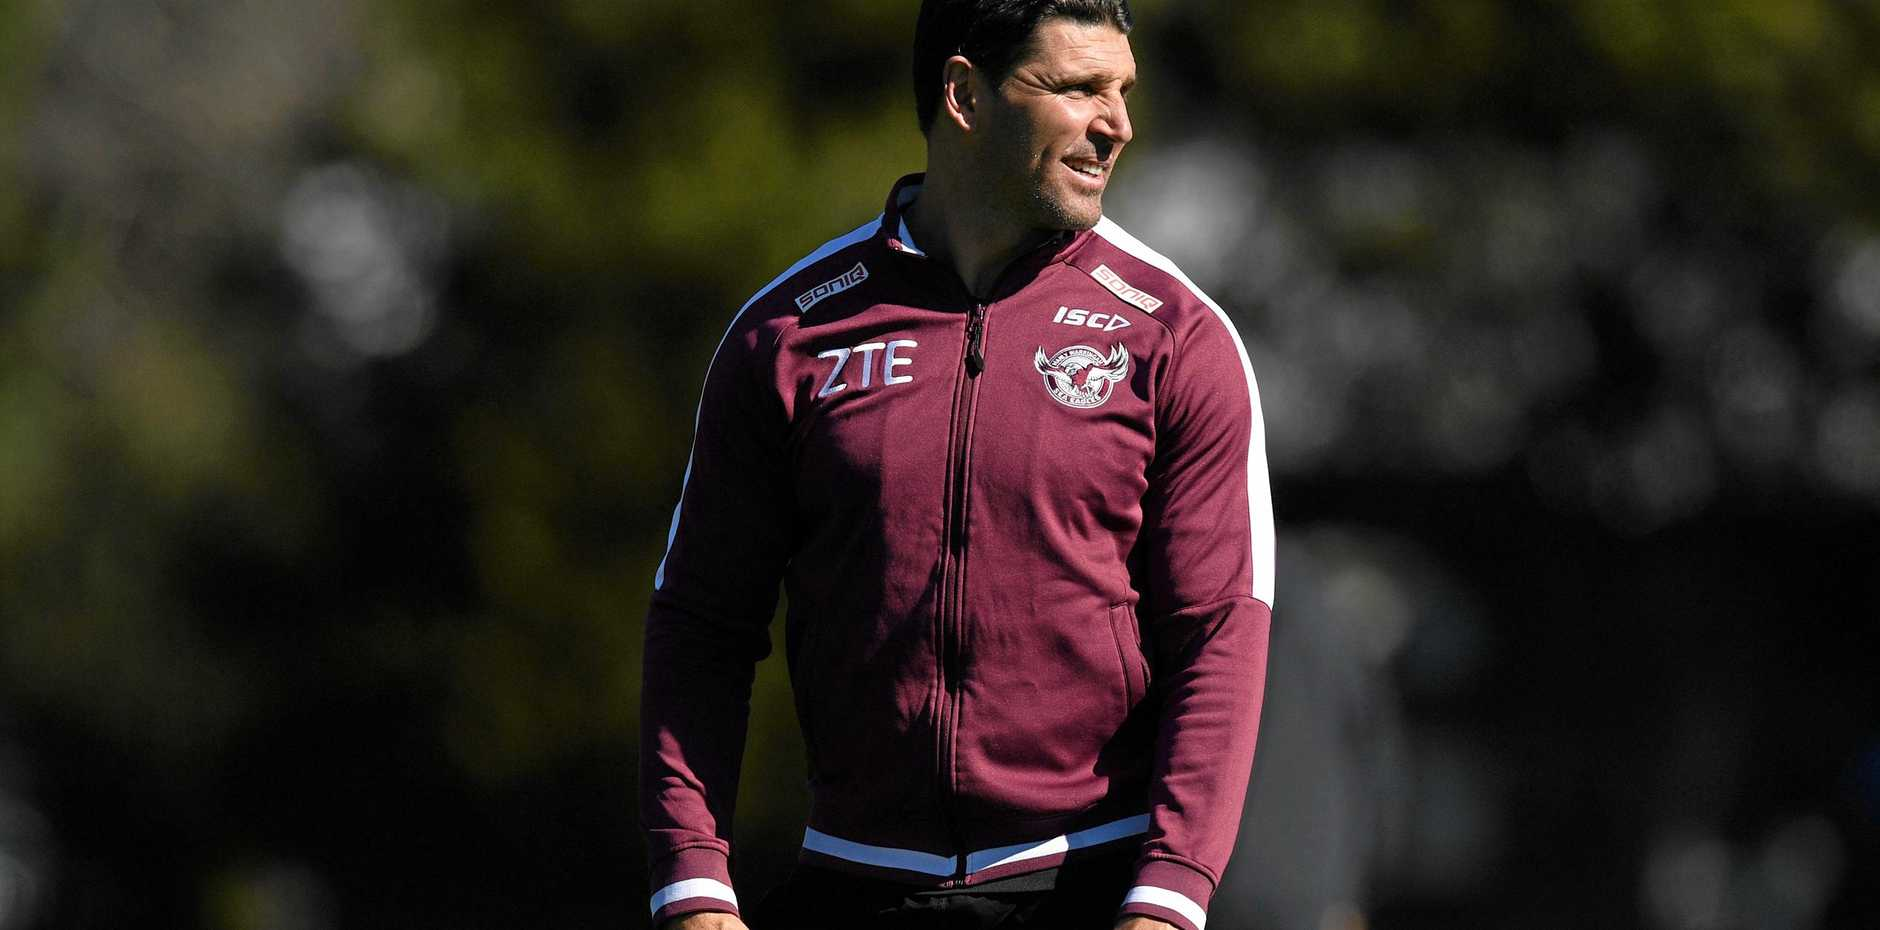 Manly Sea Eagles coach Trent Barrett looks on during a training session at Narrabeen